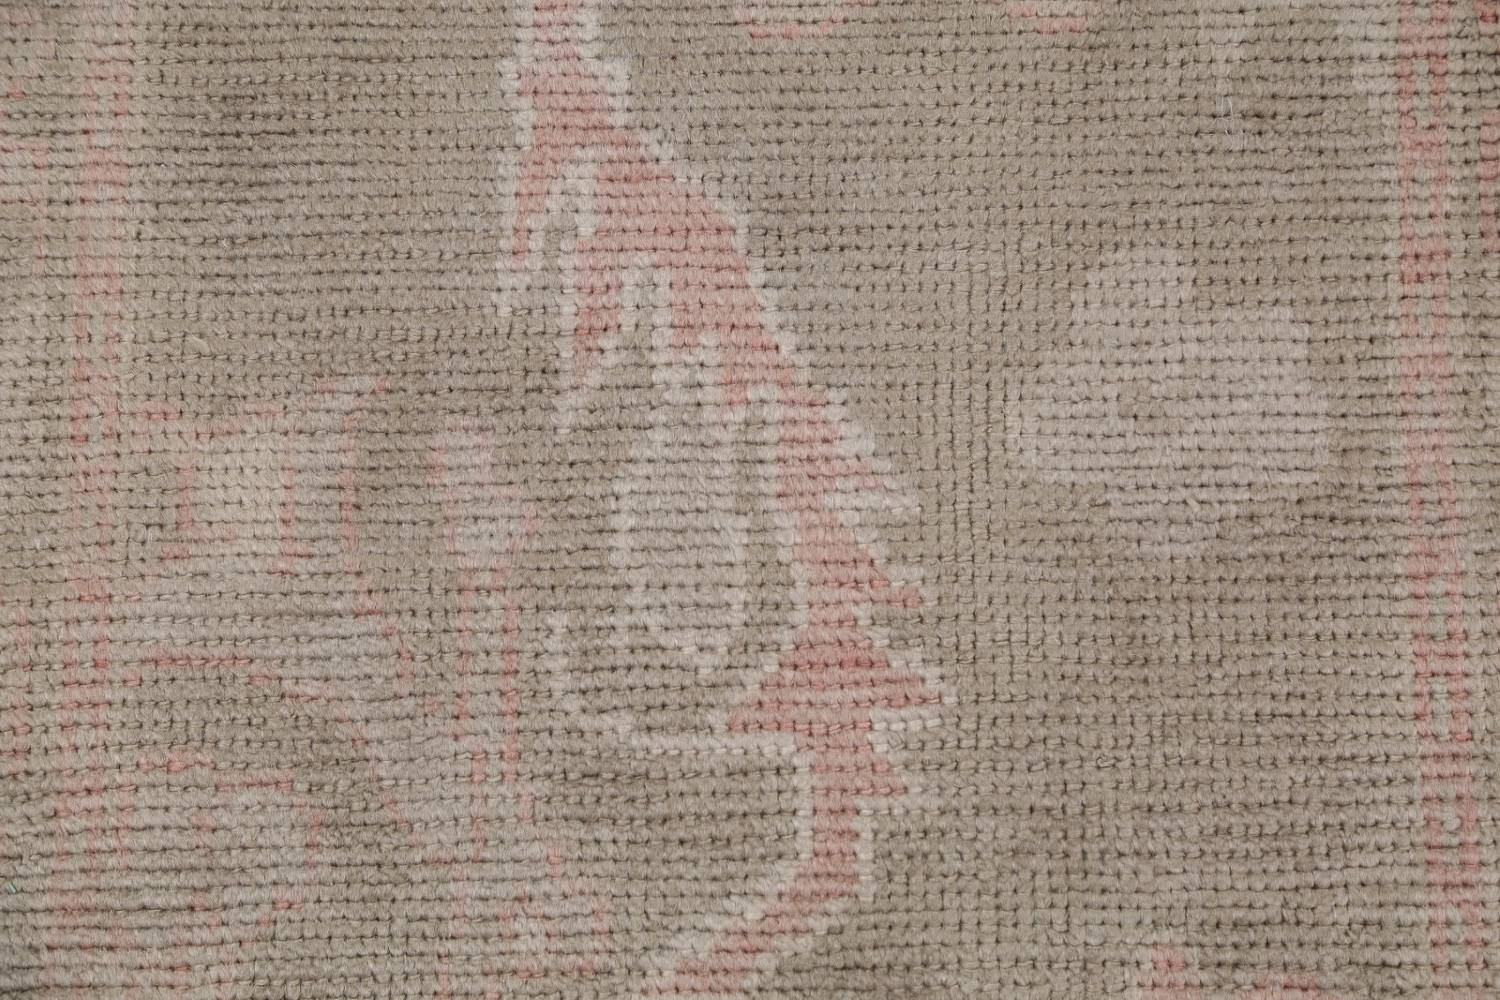 Vegetable Dye Muted Green Oushak Turkish Hand-Knotted Runner Rug 2x12 image 9